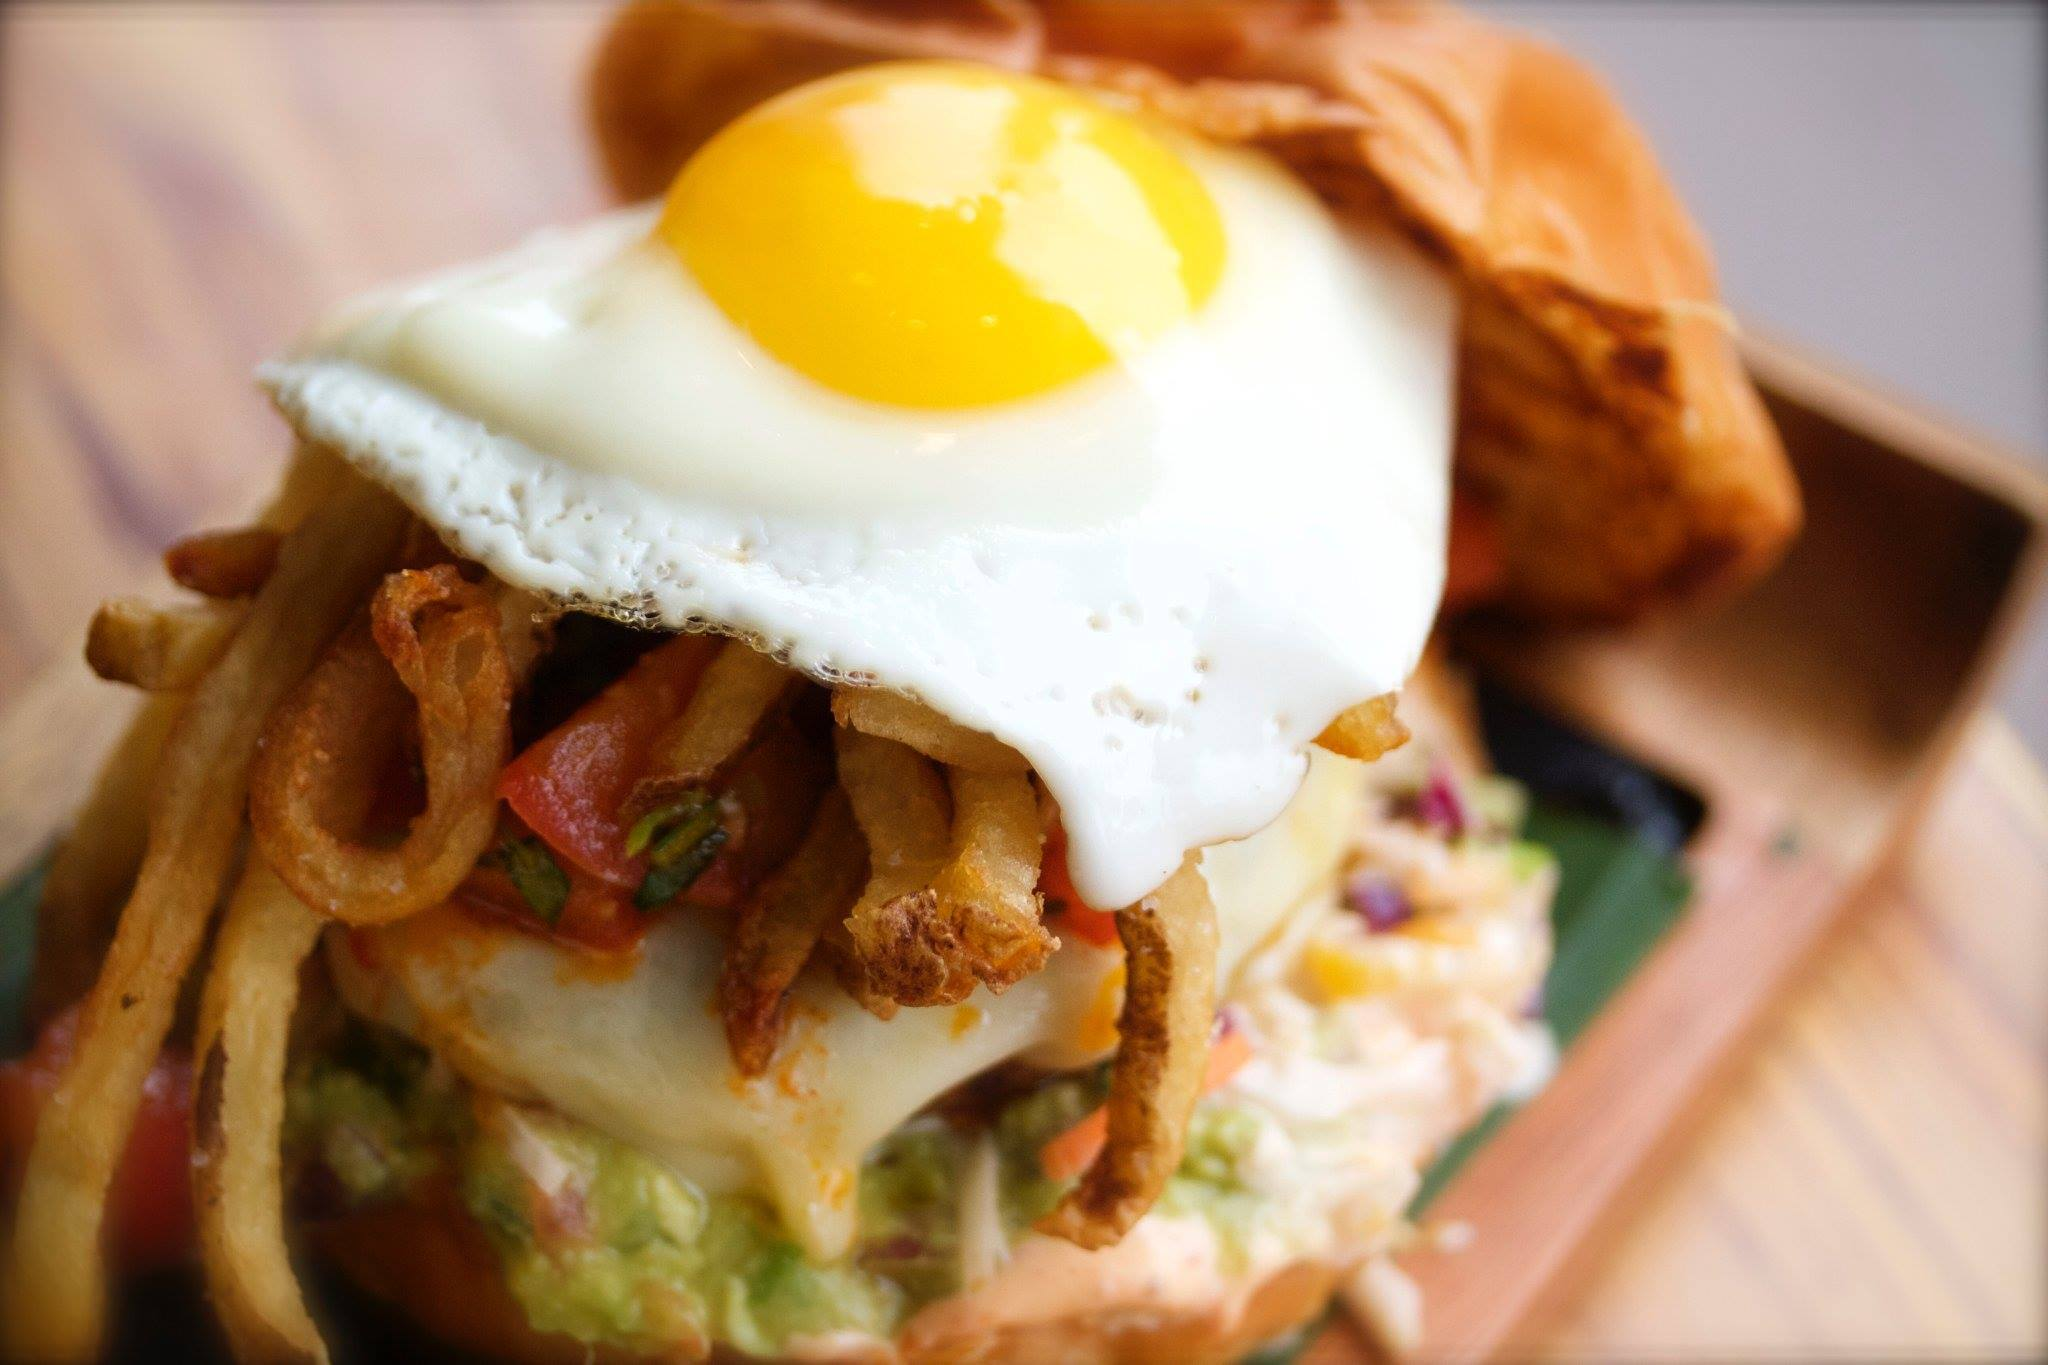 A burger on a brioche bun with shoestring fries and a fried egg.